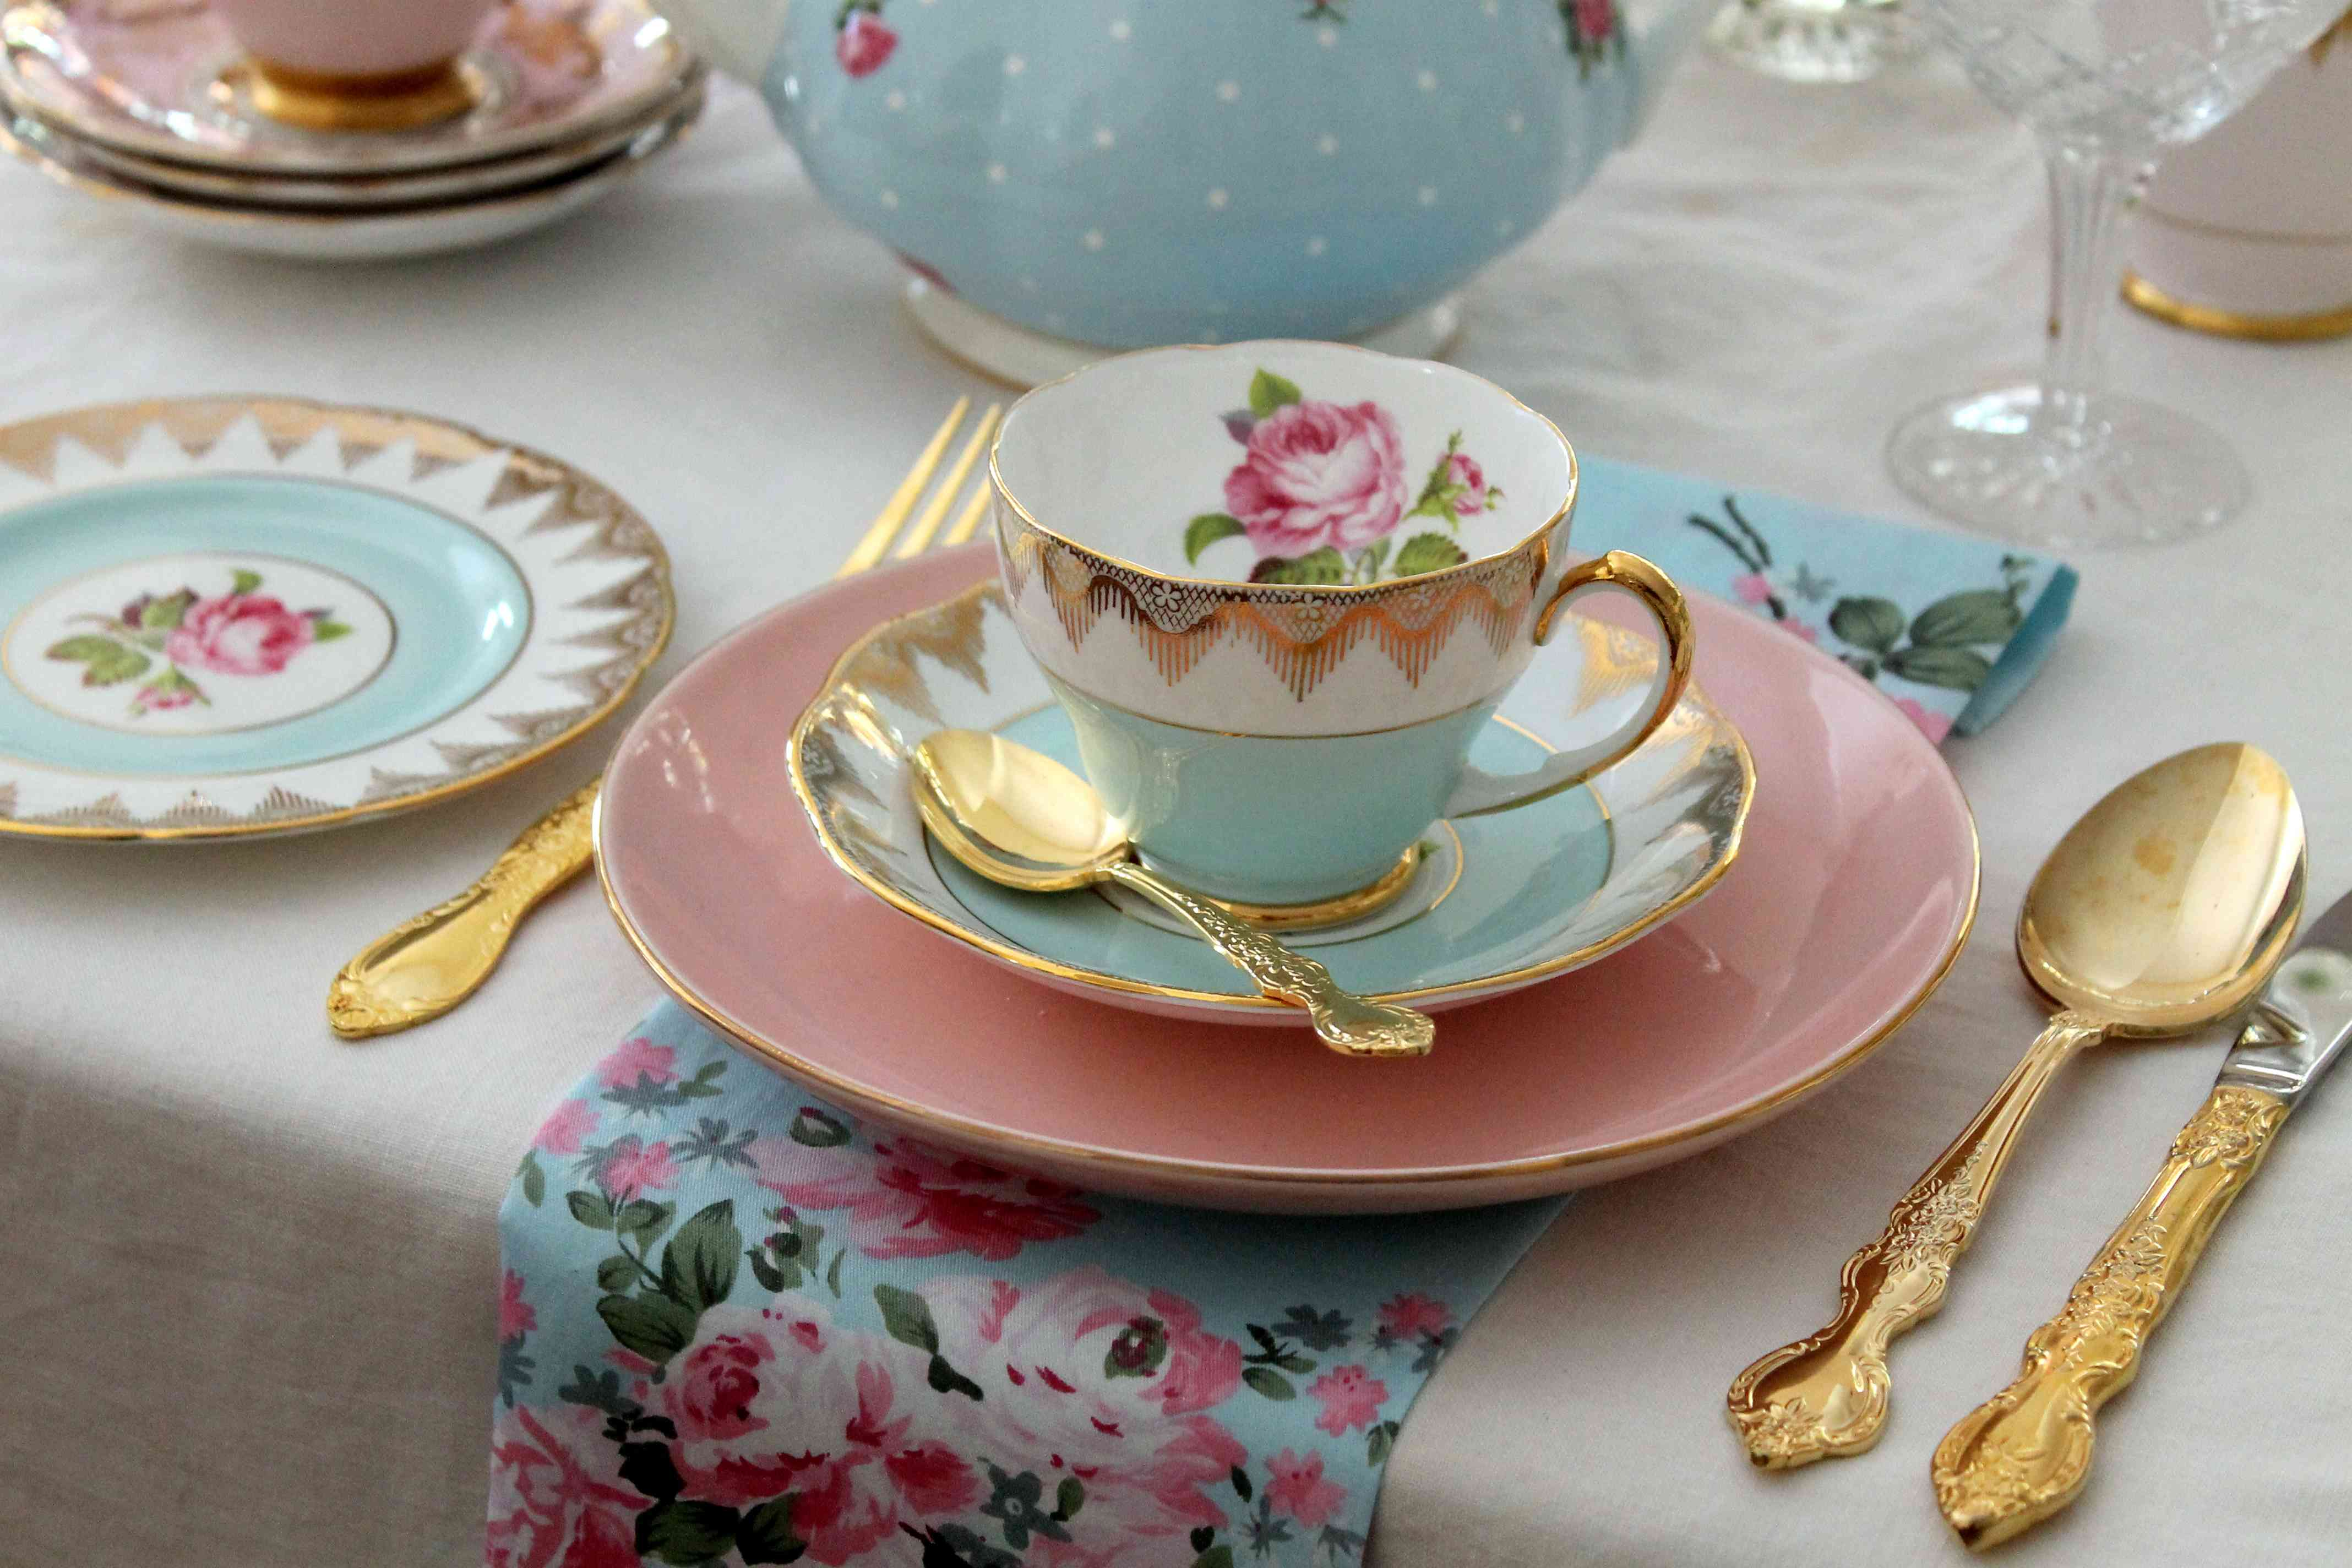 Vintage high tea party pink and blue tea cup, plates, gold cutlery flatware, pink roses, place setting - wedding bridal shower